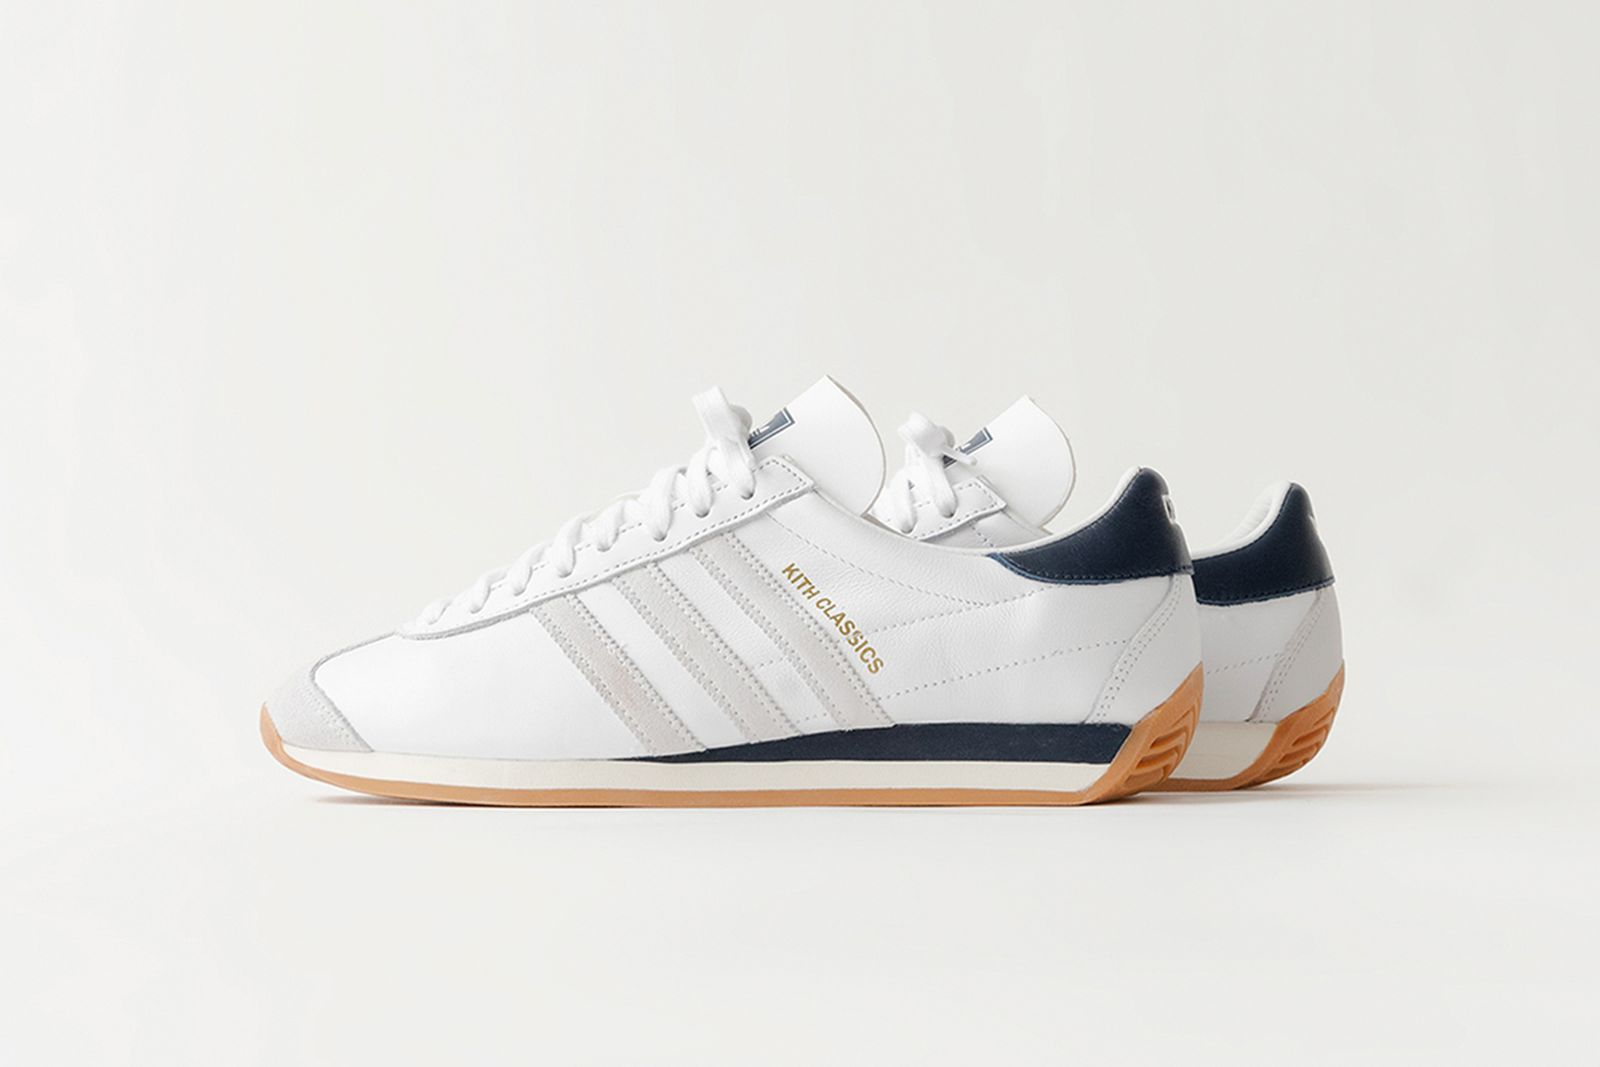 kith-adidas-summer-2021-release-info-24